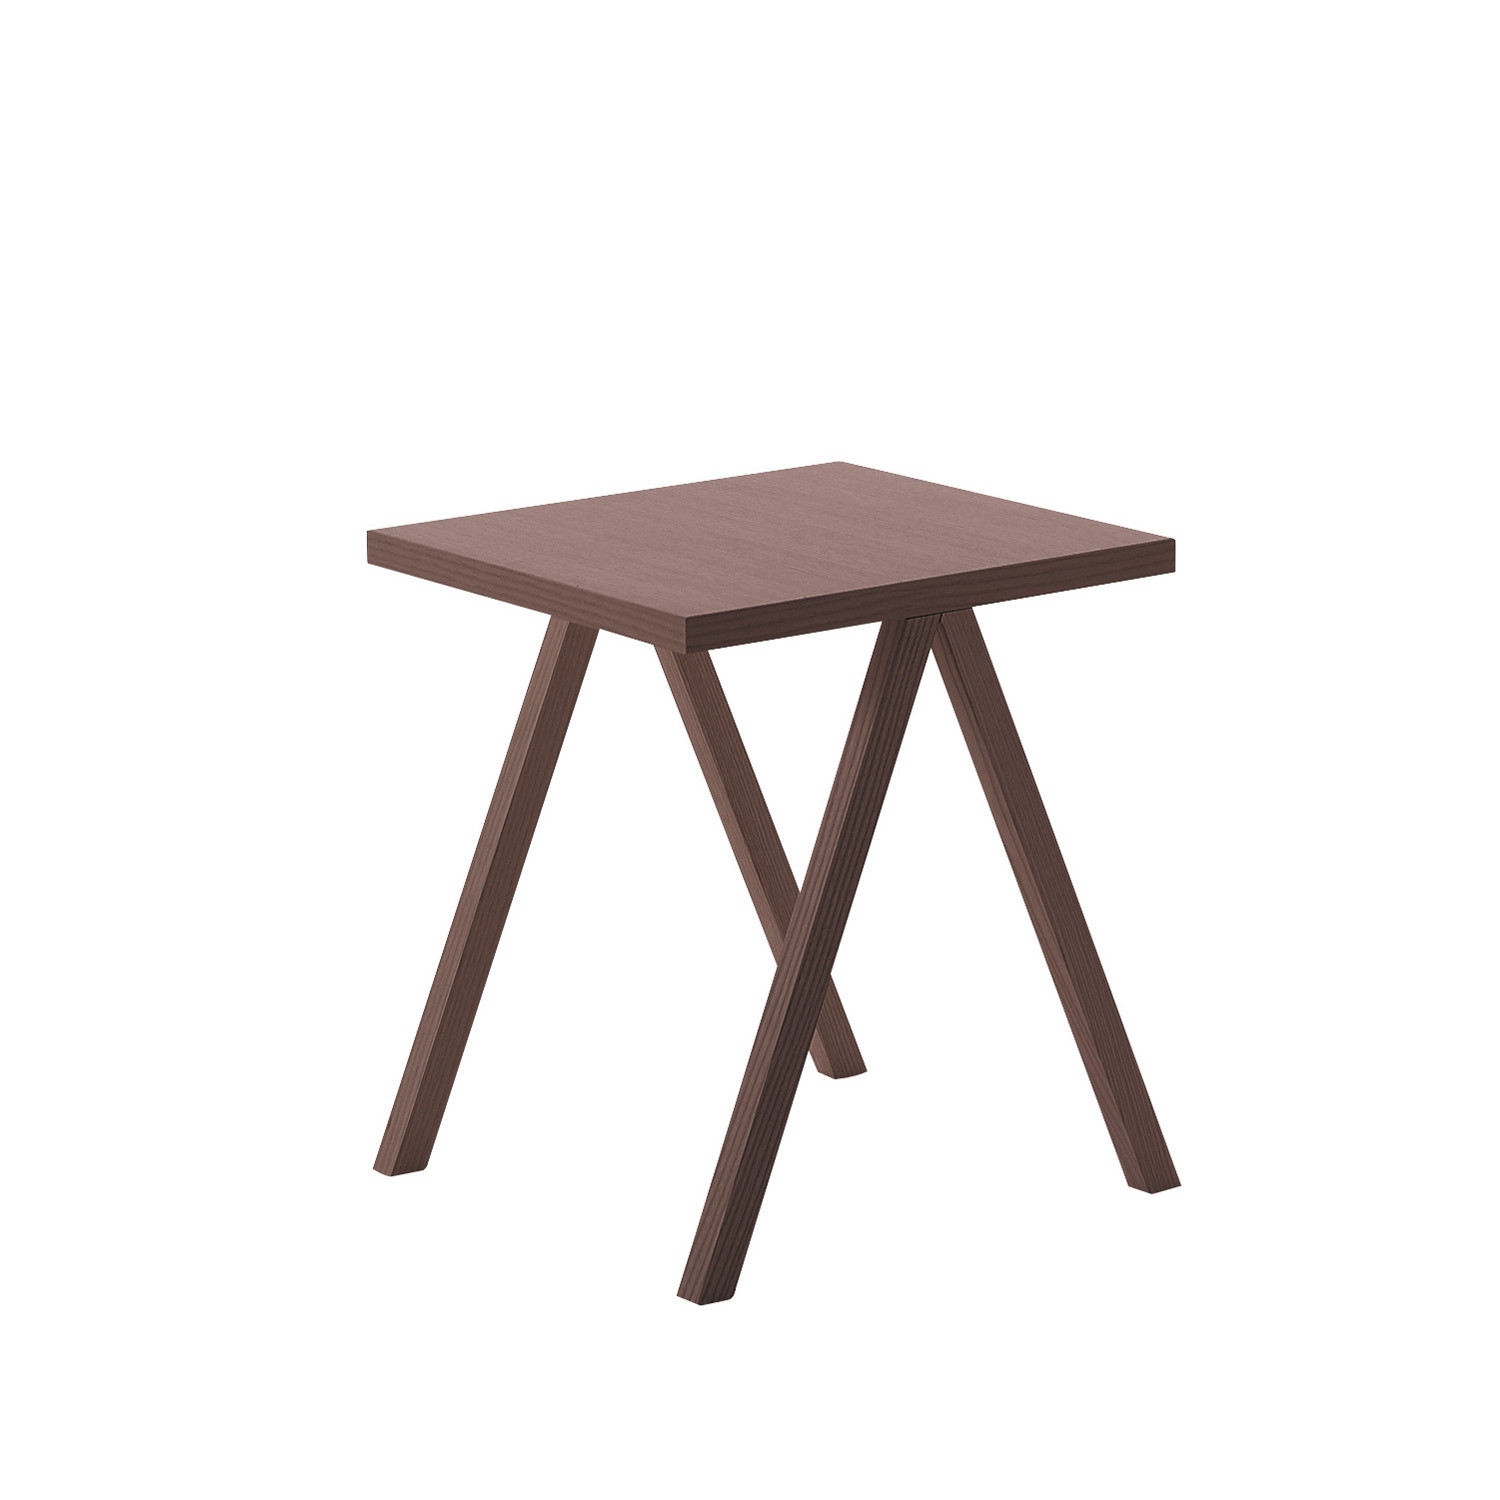 Hiip Coffee Table by Cappellini